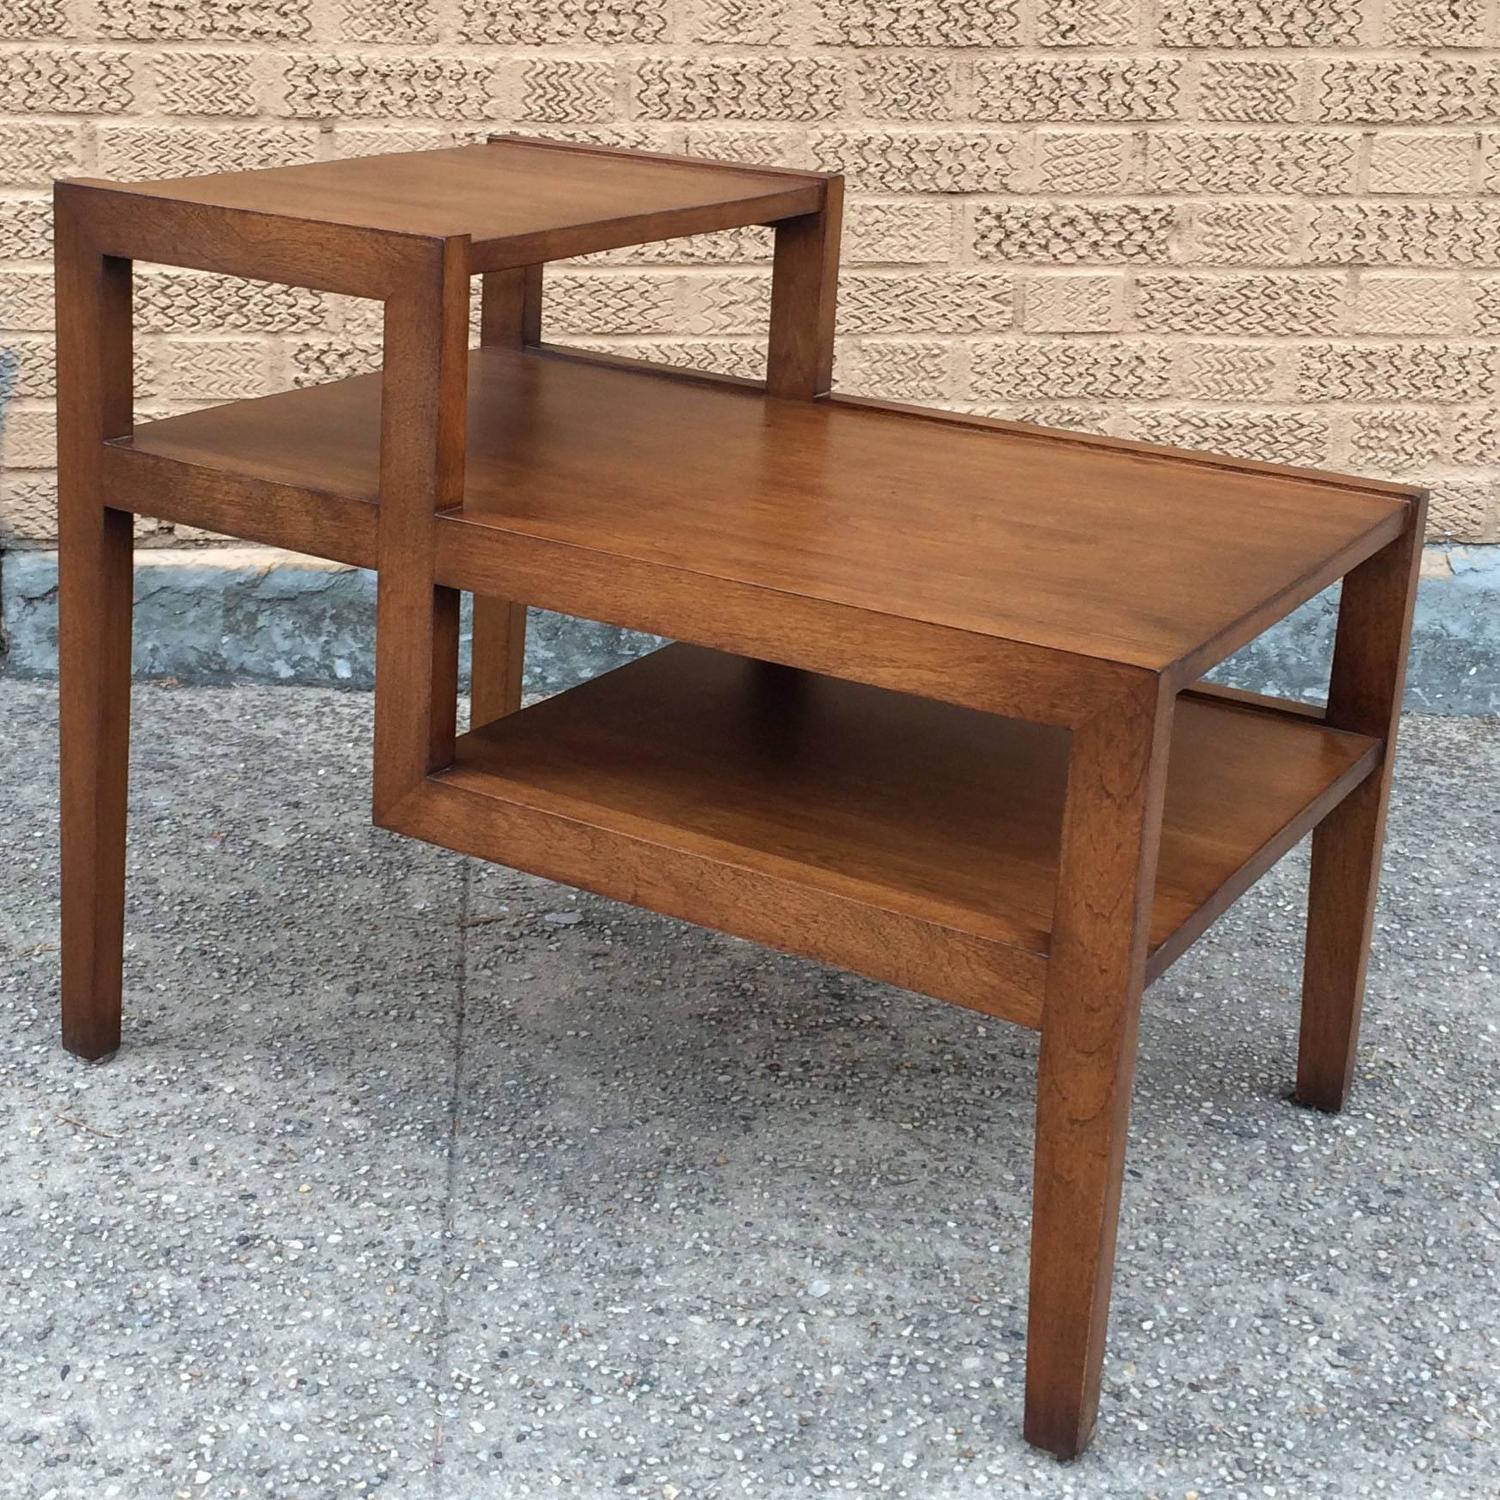 Russel Wright Mid-Century Modern Tiered Birch Side Table